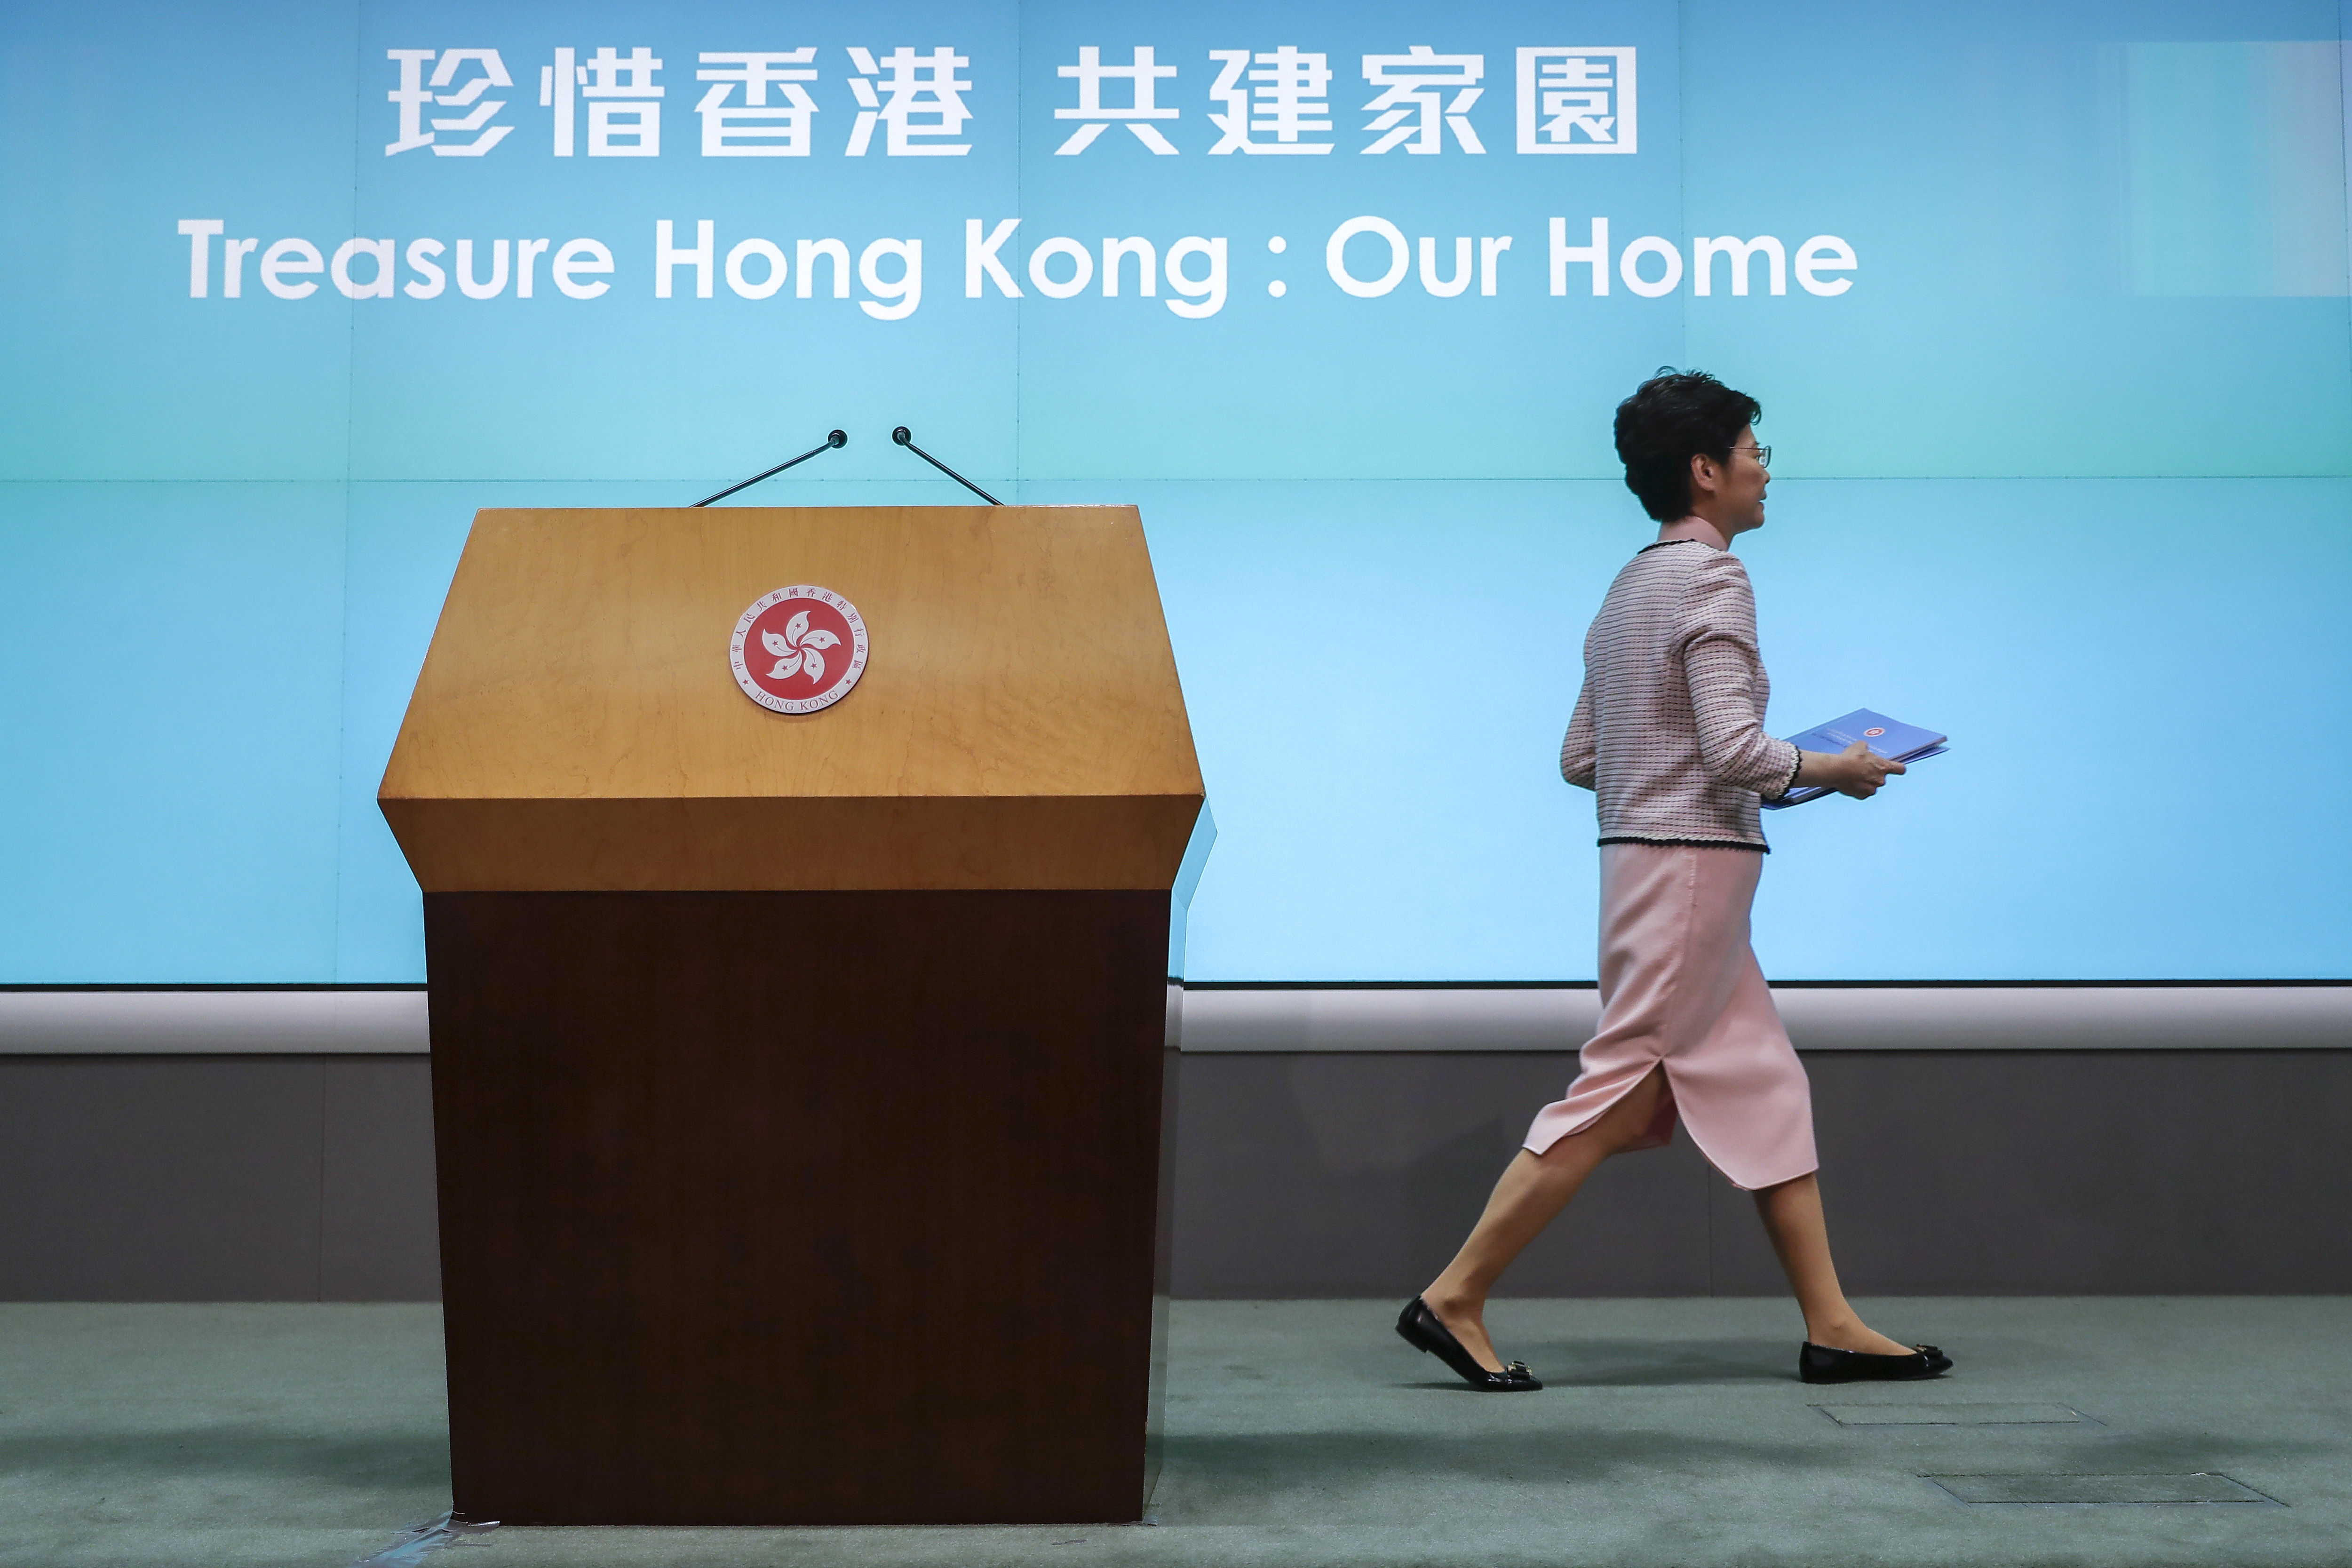 Hong Kong Chief Executive Carrie Lam leaves the stage after a press conference at the Legislative Council in Hong Kong  on Wednesday, October 16, 2019